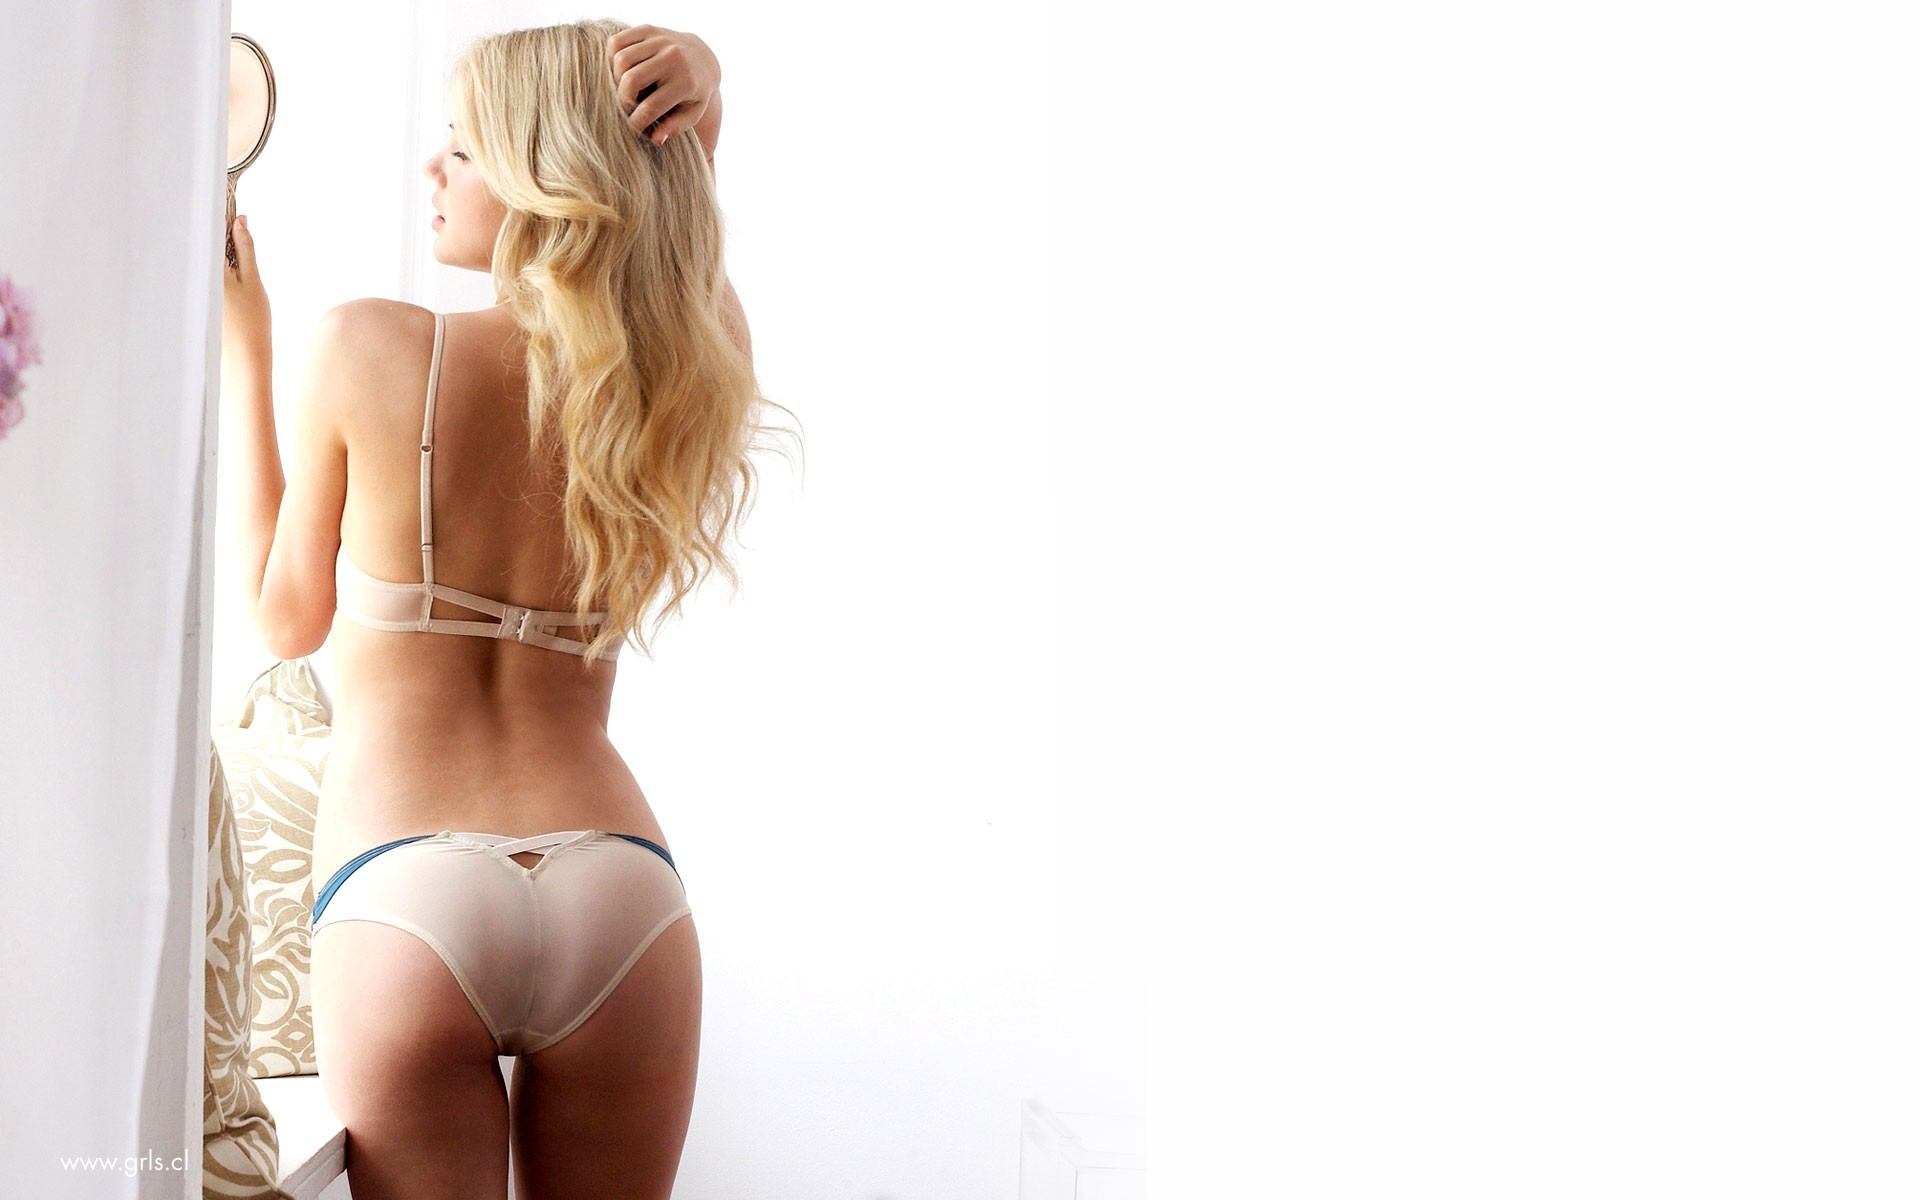 blondes woman panties ass HD Wallpaper